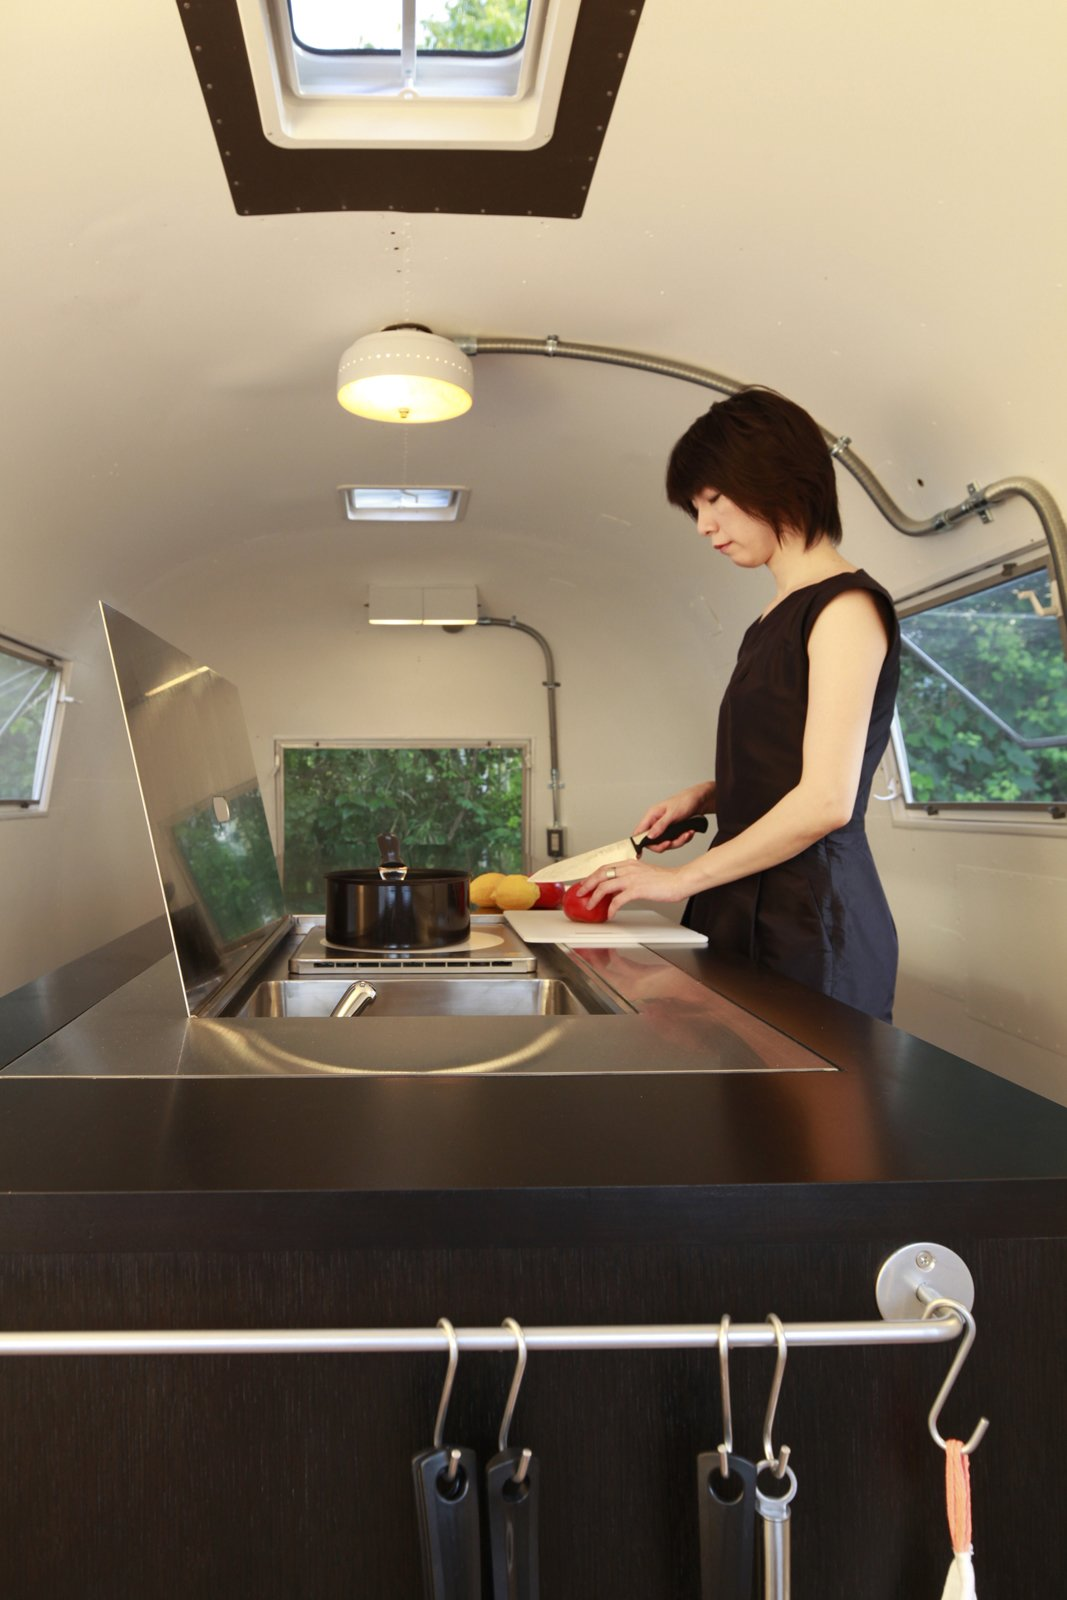 Kitchen, Cooktops, Drop In Sink, Metal Counter, and Ceiling Lighting Inside the renovated Airstream, a woman prepares a meal. The skylight above the cook top lets fumes escape the small space. Photo by Sadamu Saito.  Photo 8 of 8 in These 7 Vintage Airstreams Were Transformed Into Modern Escapes from Hide and Sleep